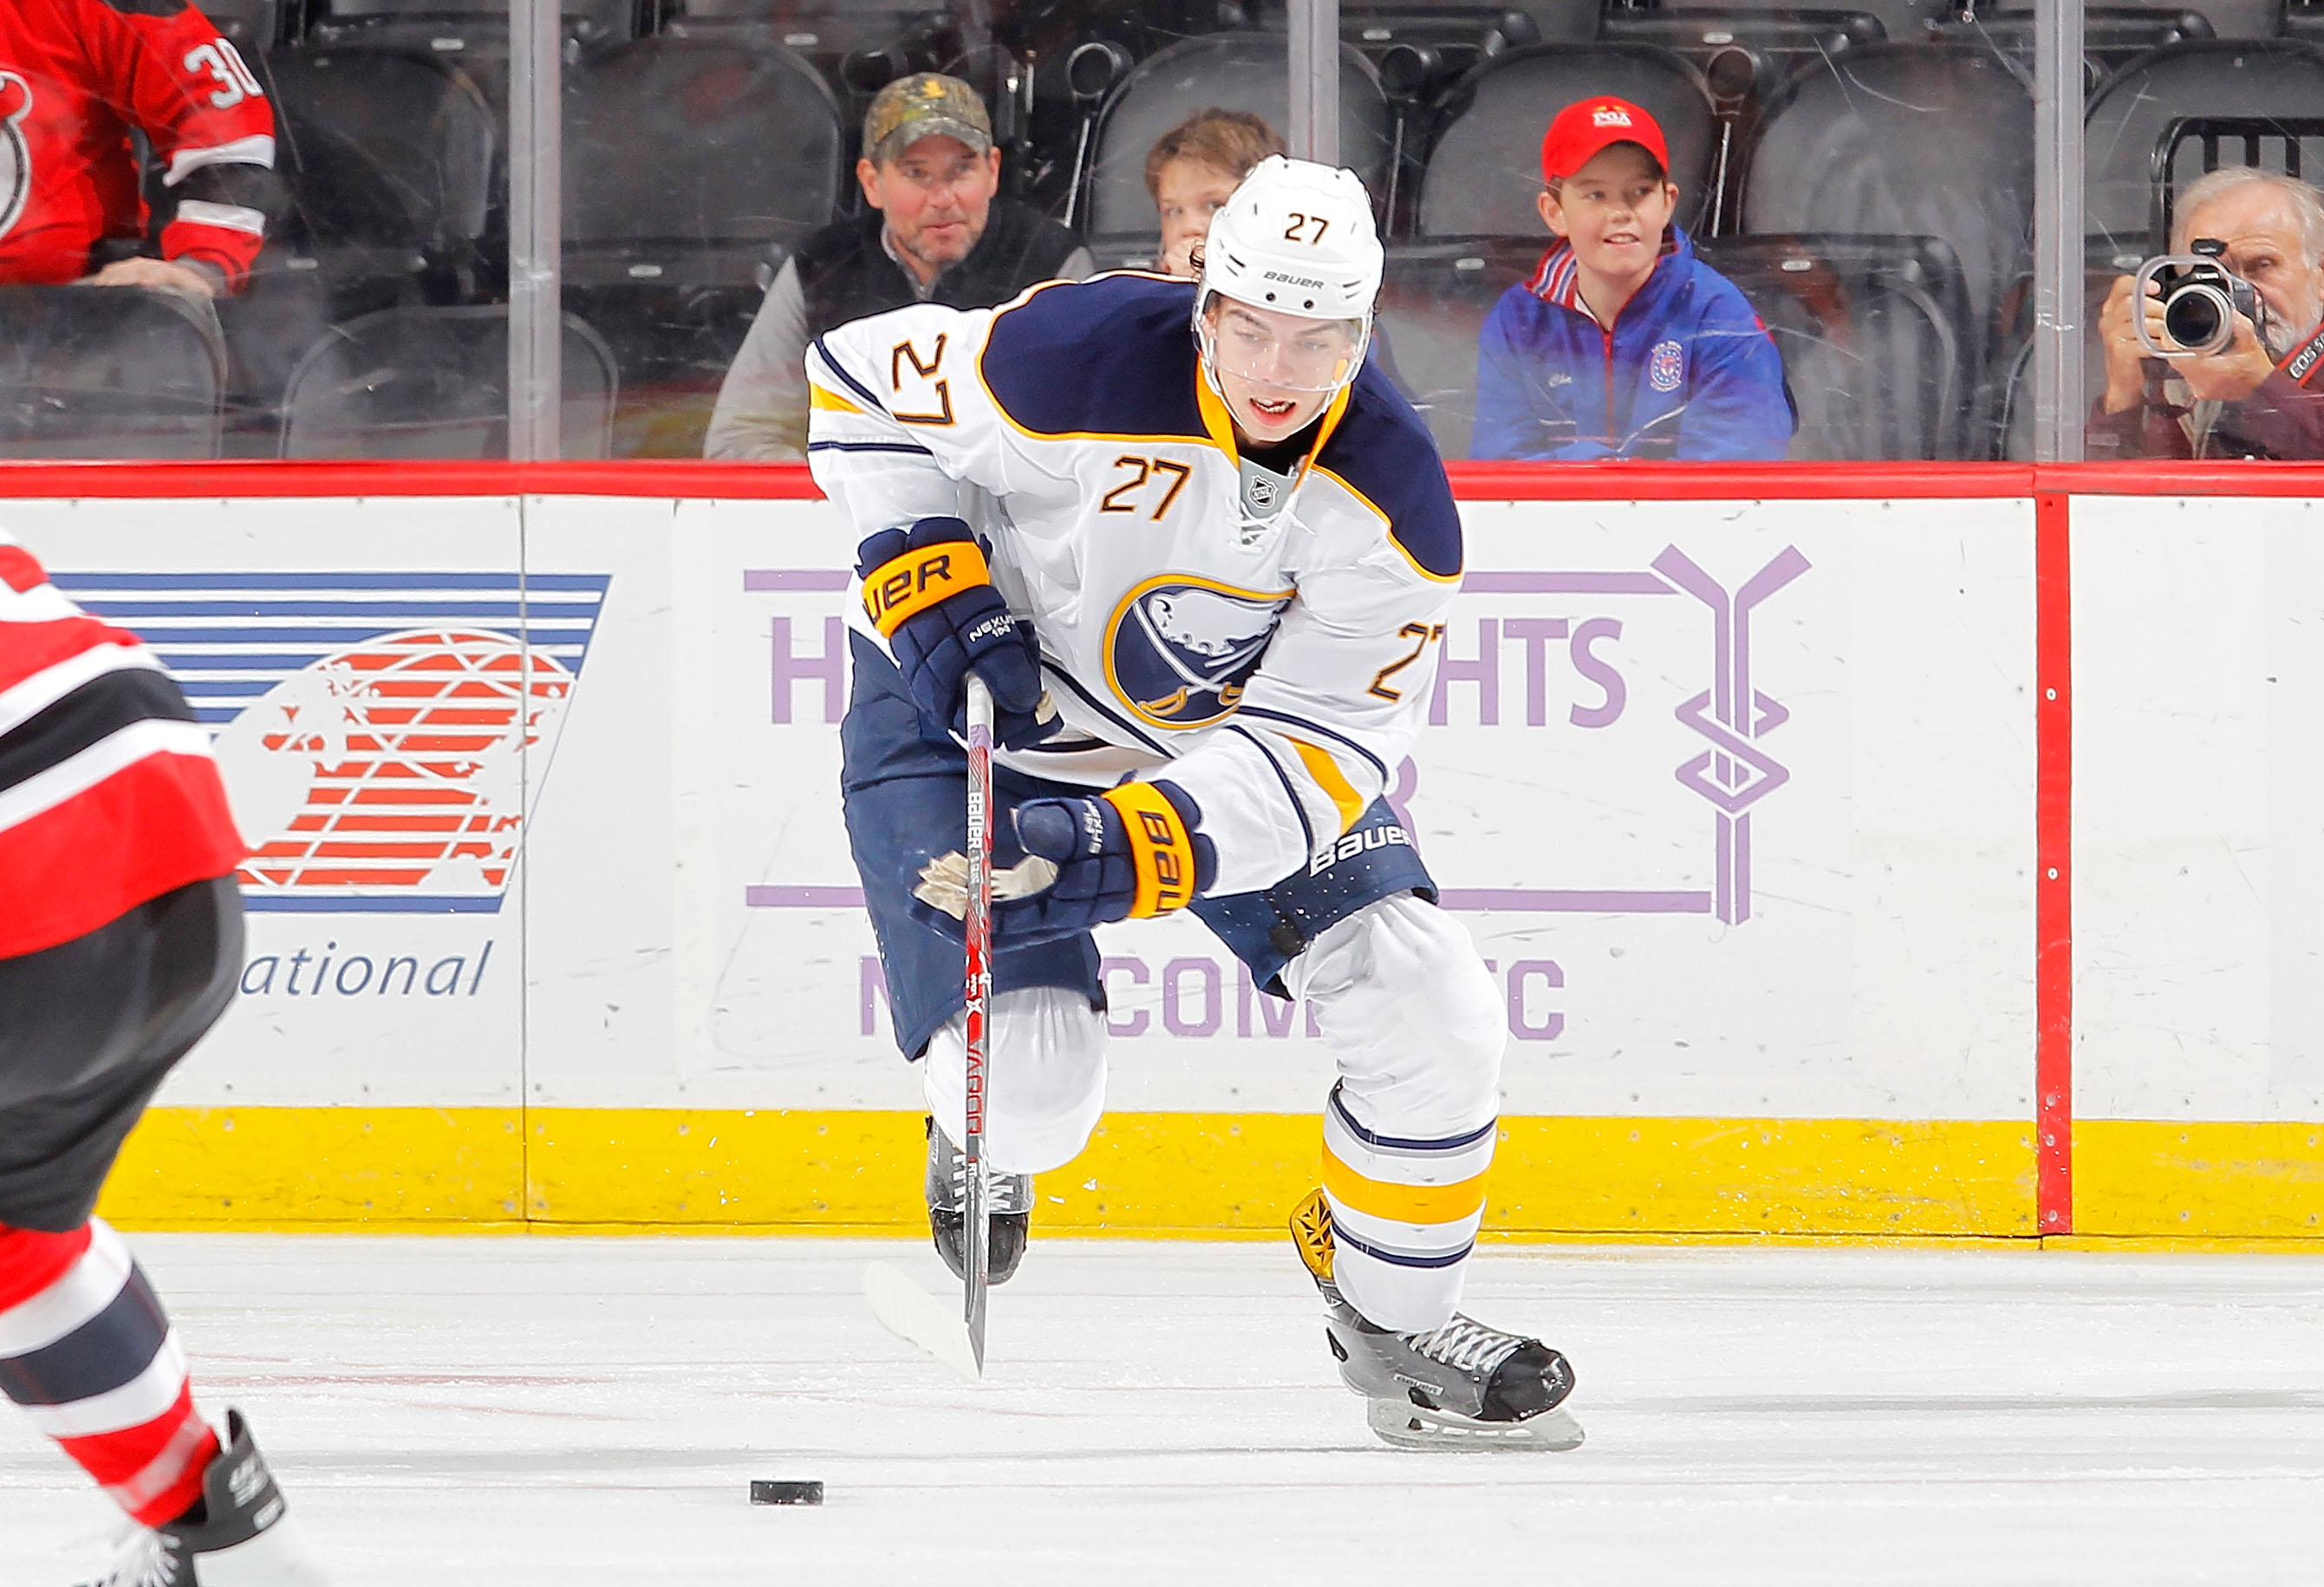 Center Derek Grant has not scored in any of his 75 NHL games. (Getty Images)